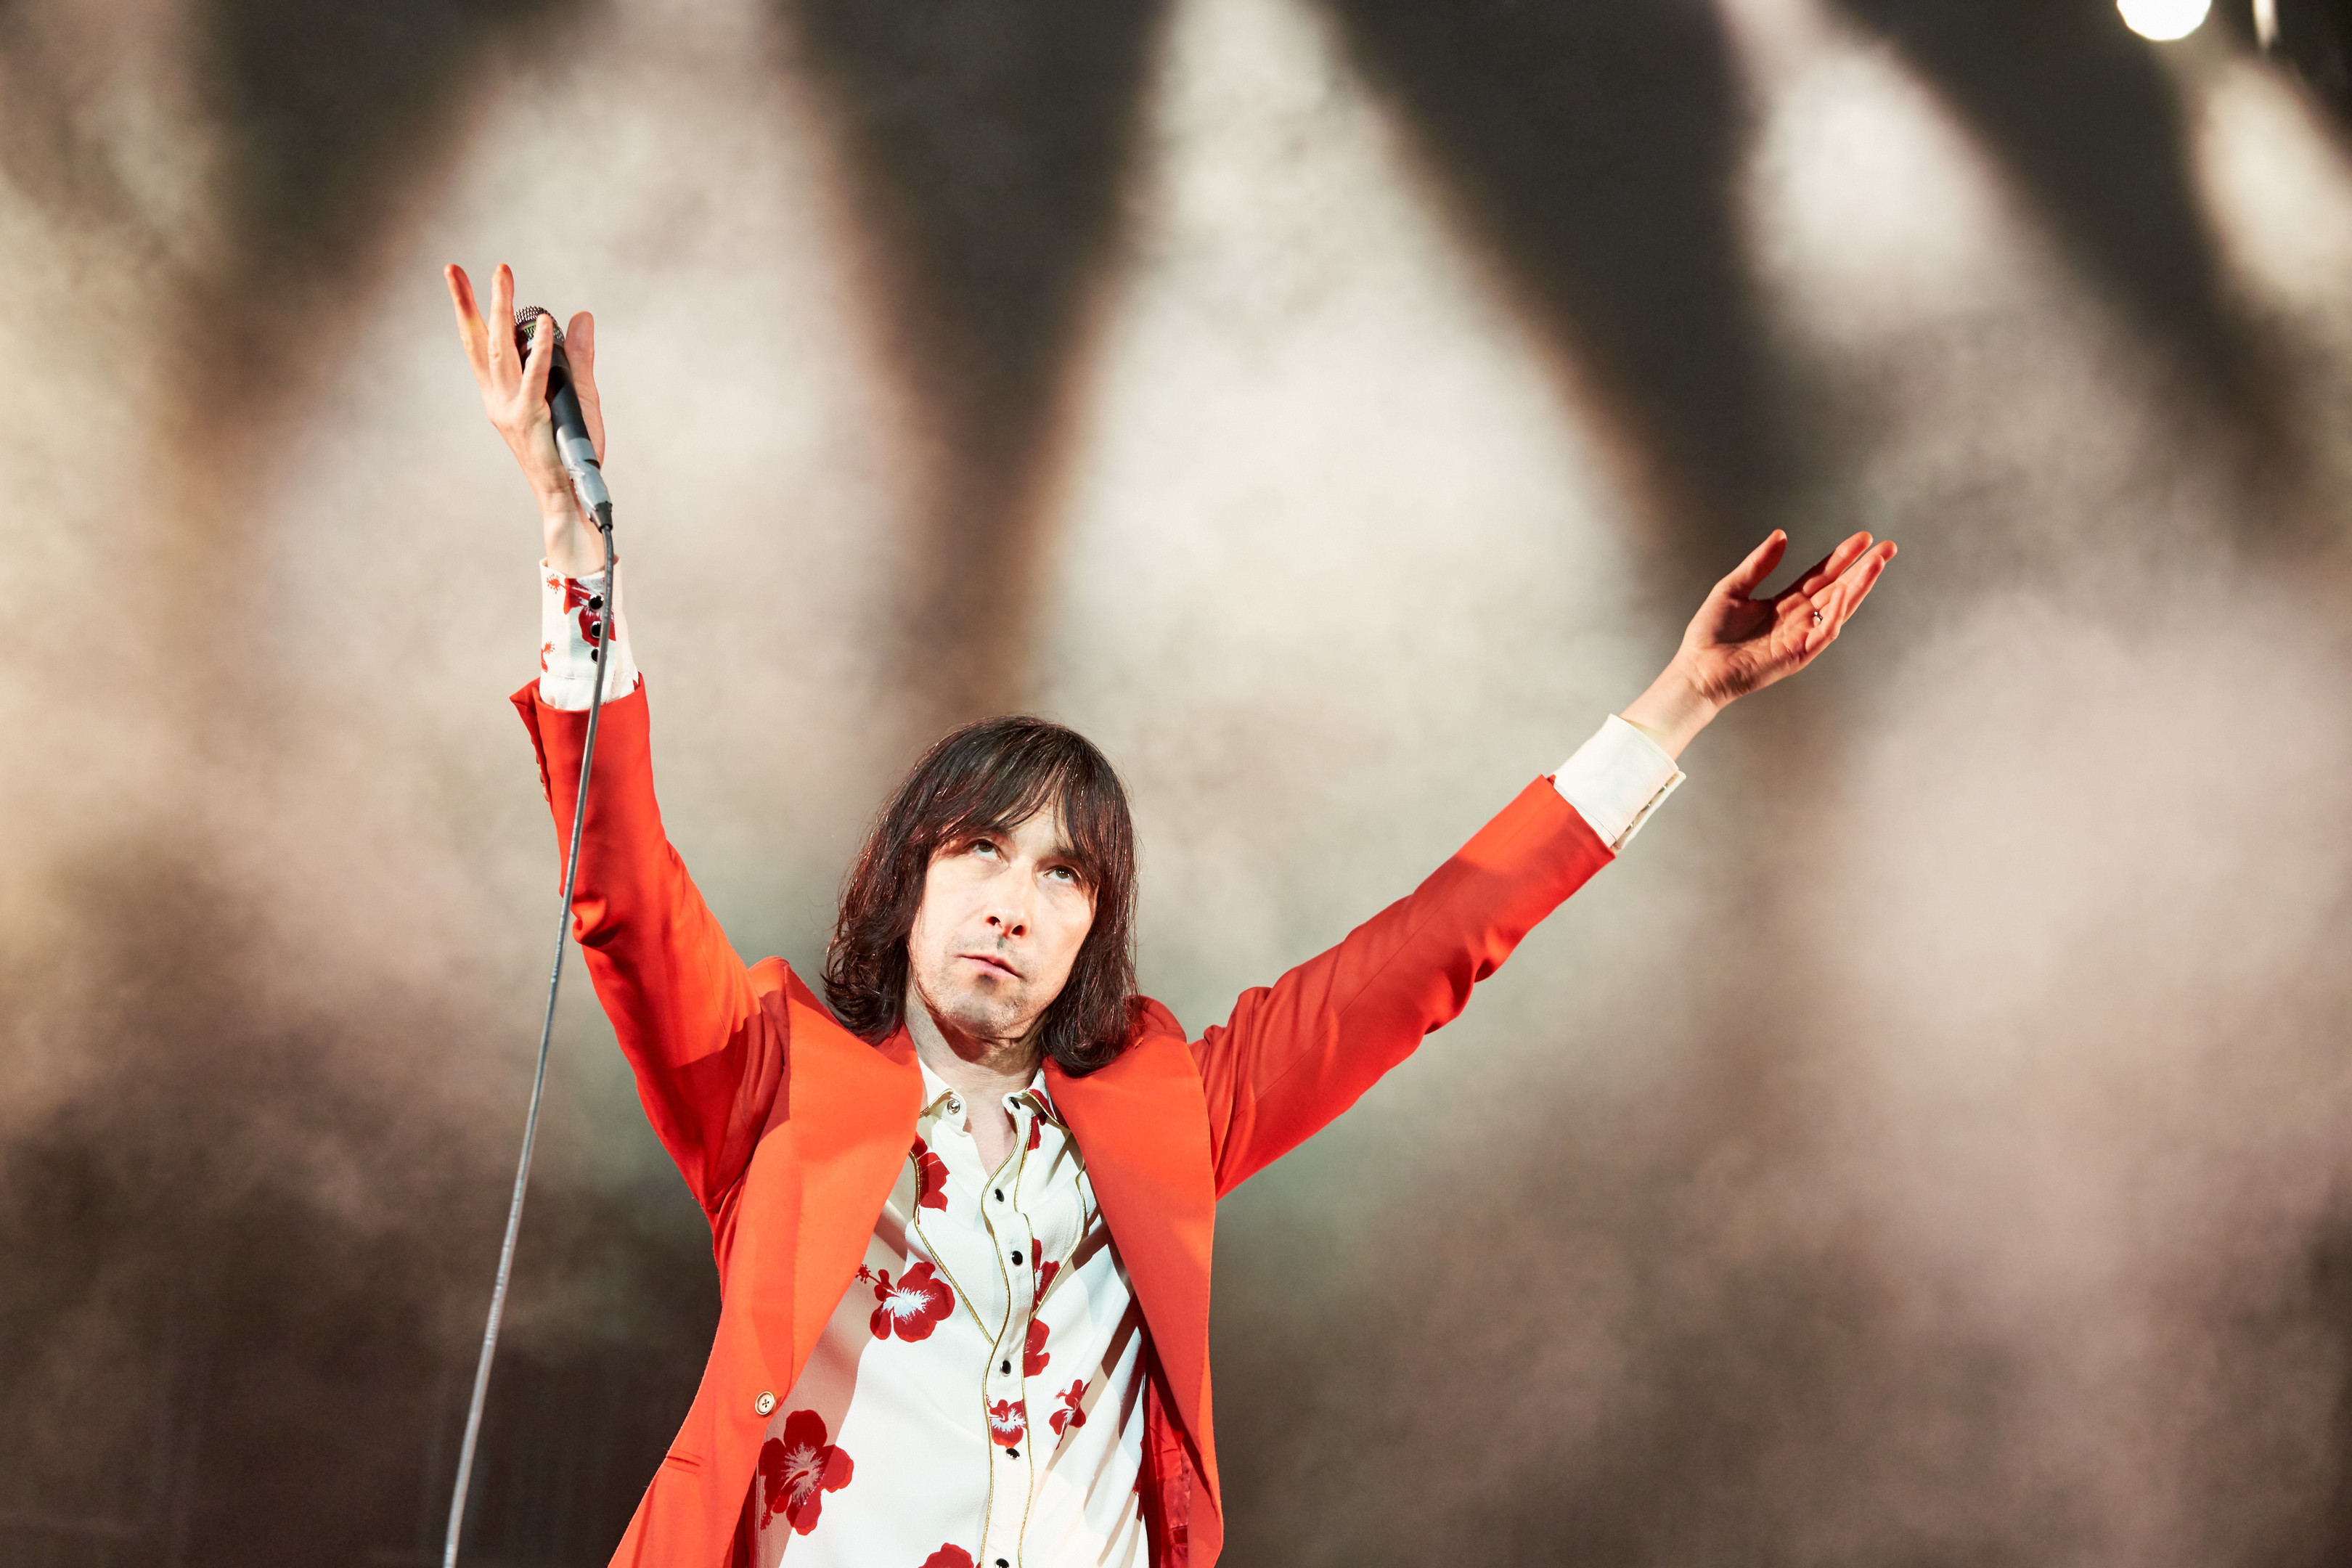 Primal Scream and Lewis Capaldi will perform at the V&A opening event. (Photo by Phil Bourne/Redferns)